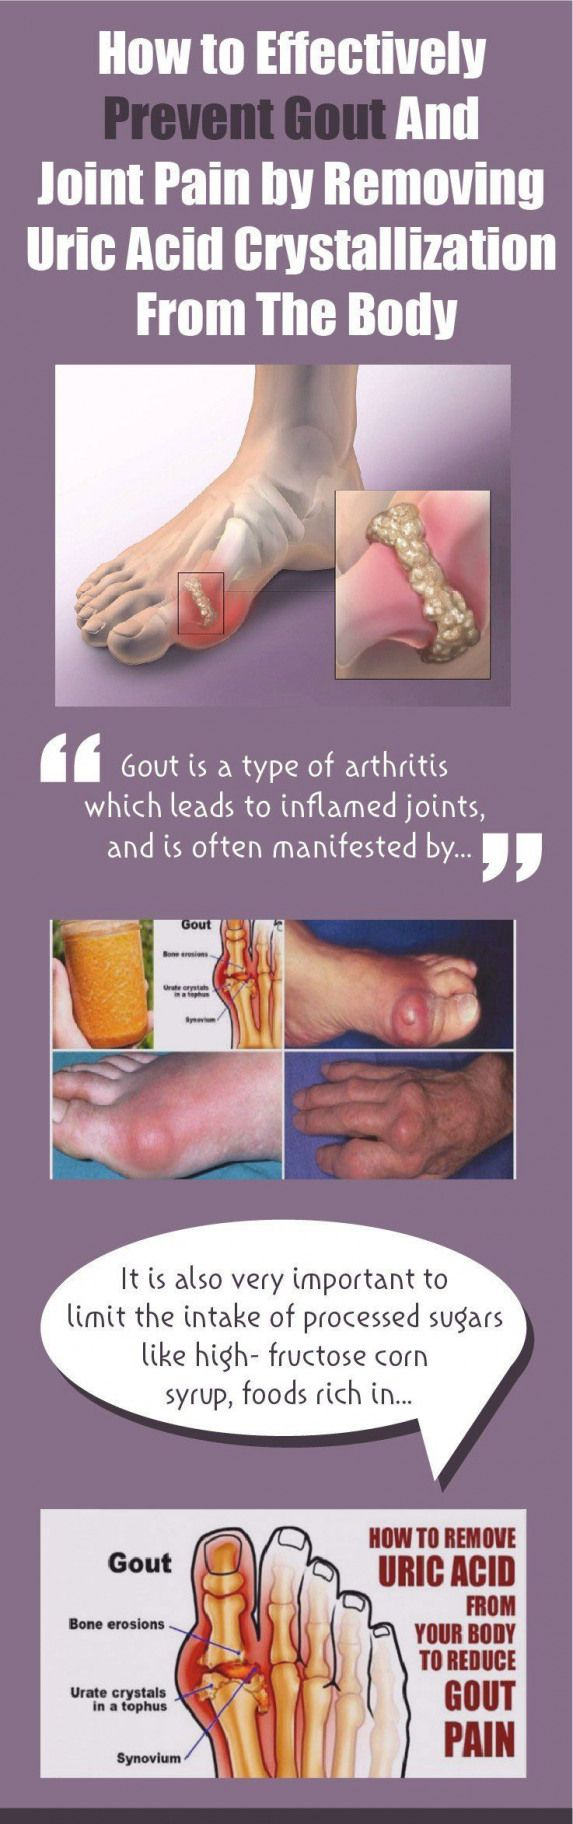 Goutis a type of arthritis which leads to inflamed joints